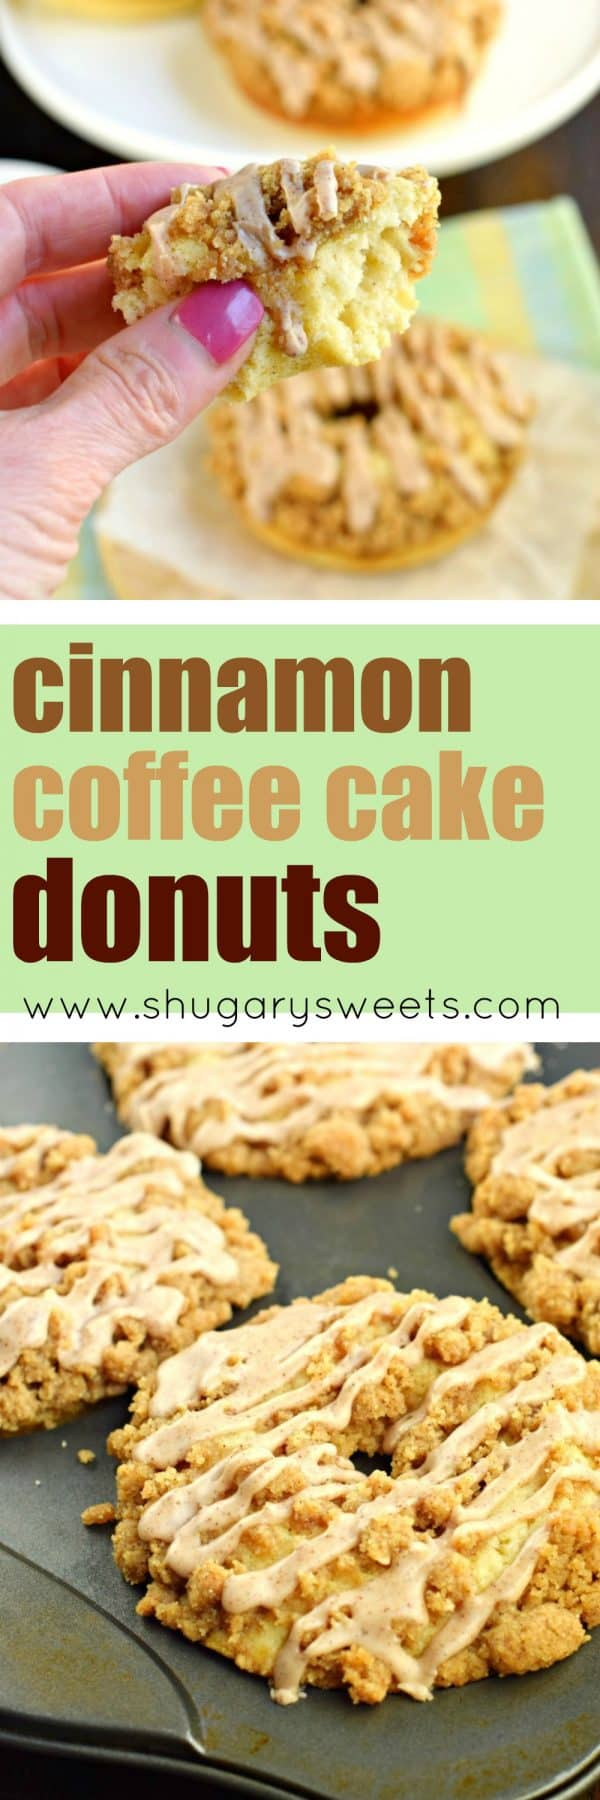 Tender, moist CinnamonCoffee Cake Donuts with a chunky cinnamon streusel and sweet cinnamon glaze. Baked, not fried, and perfect for a delicious Saturday morning breakfast!